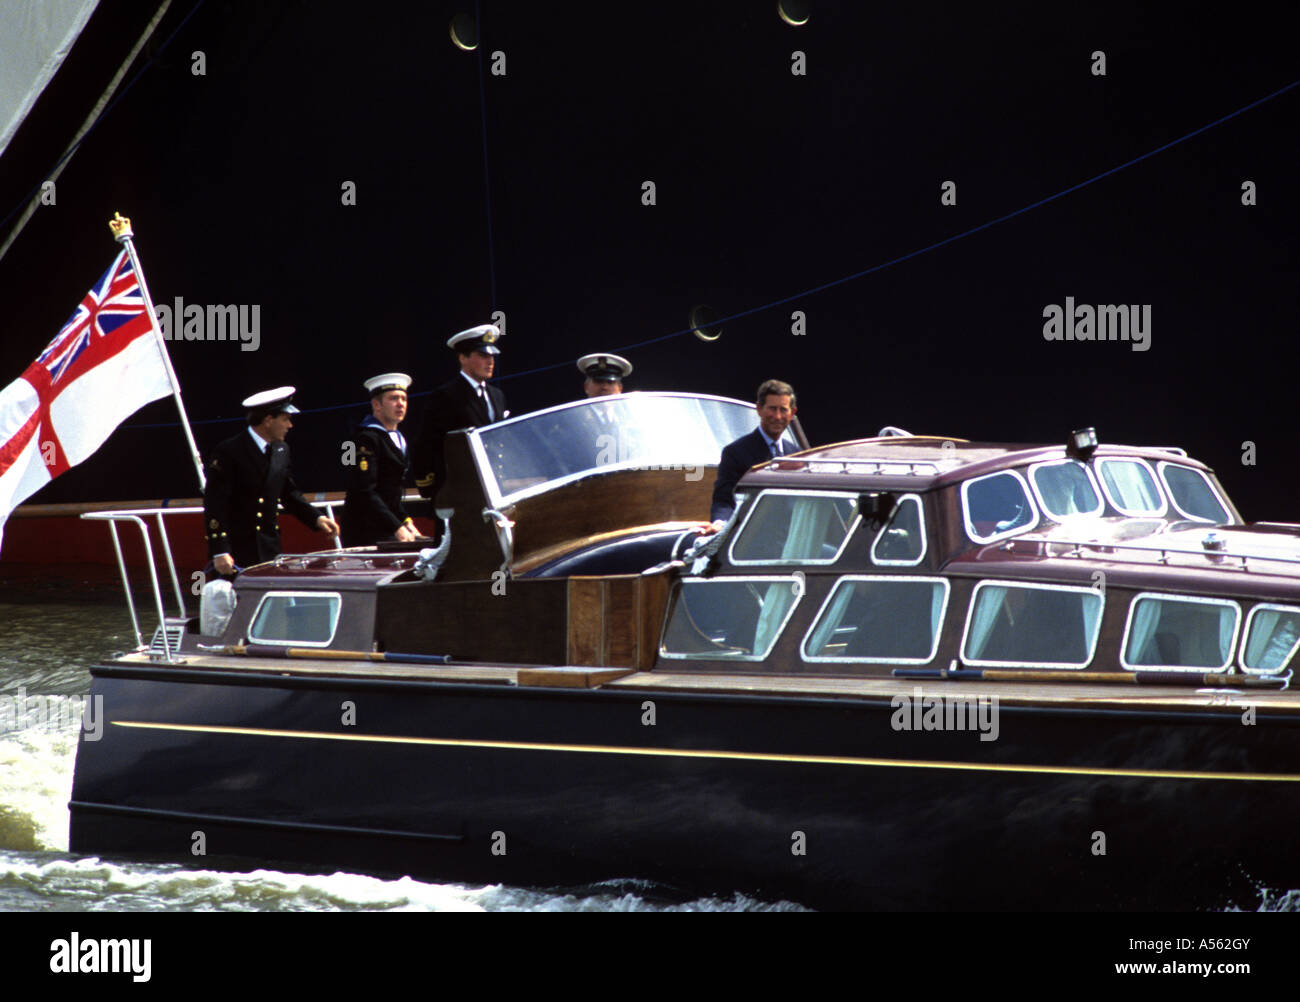 Charles-Prince of Wales leaves Royal Yacht aboard a Royal Barge - Stock Image